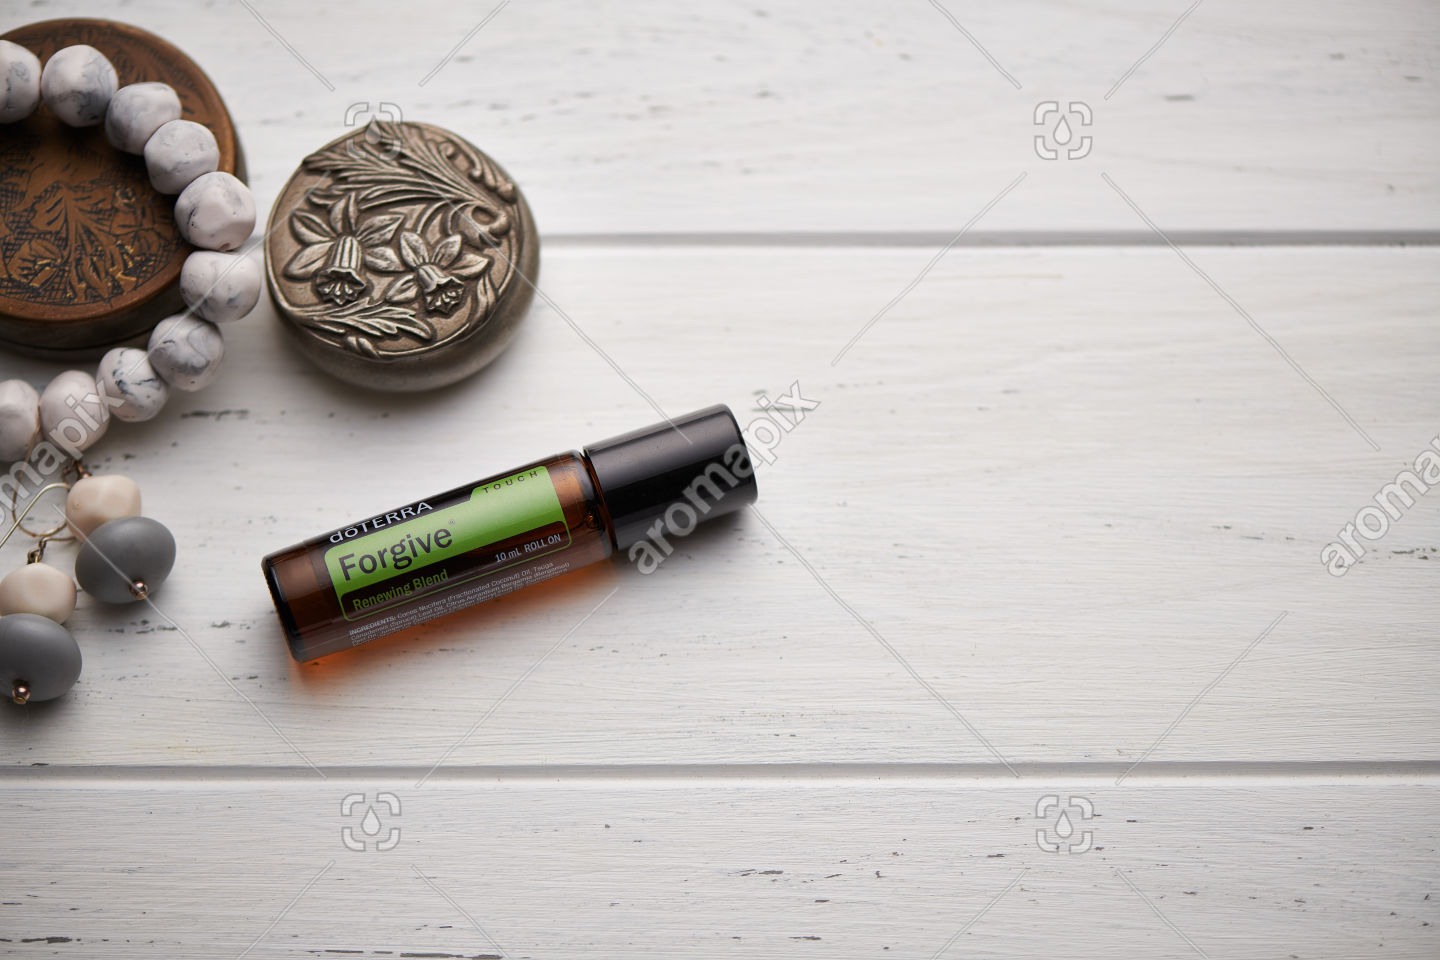 doTERRA Forgive Touch on rustic background